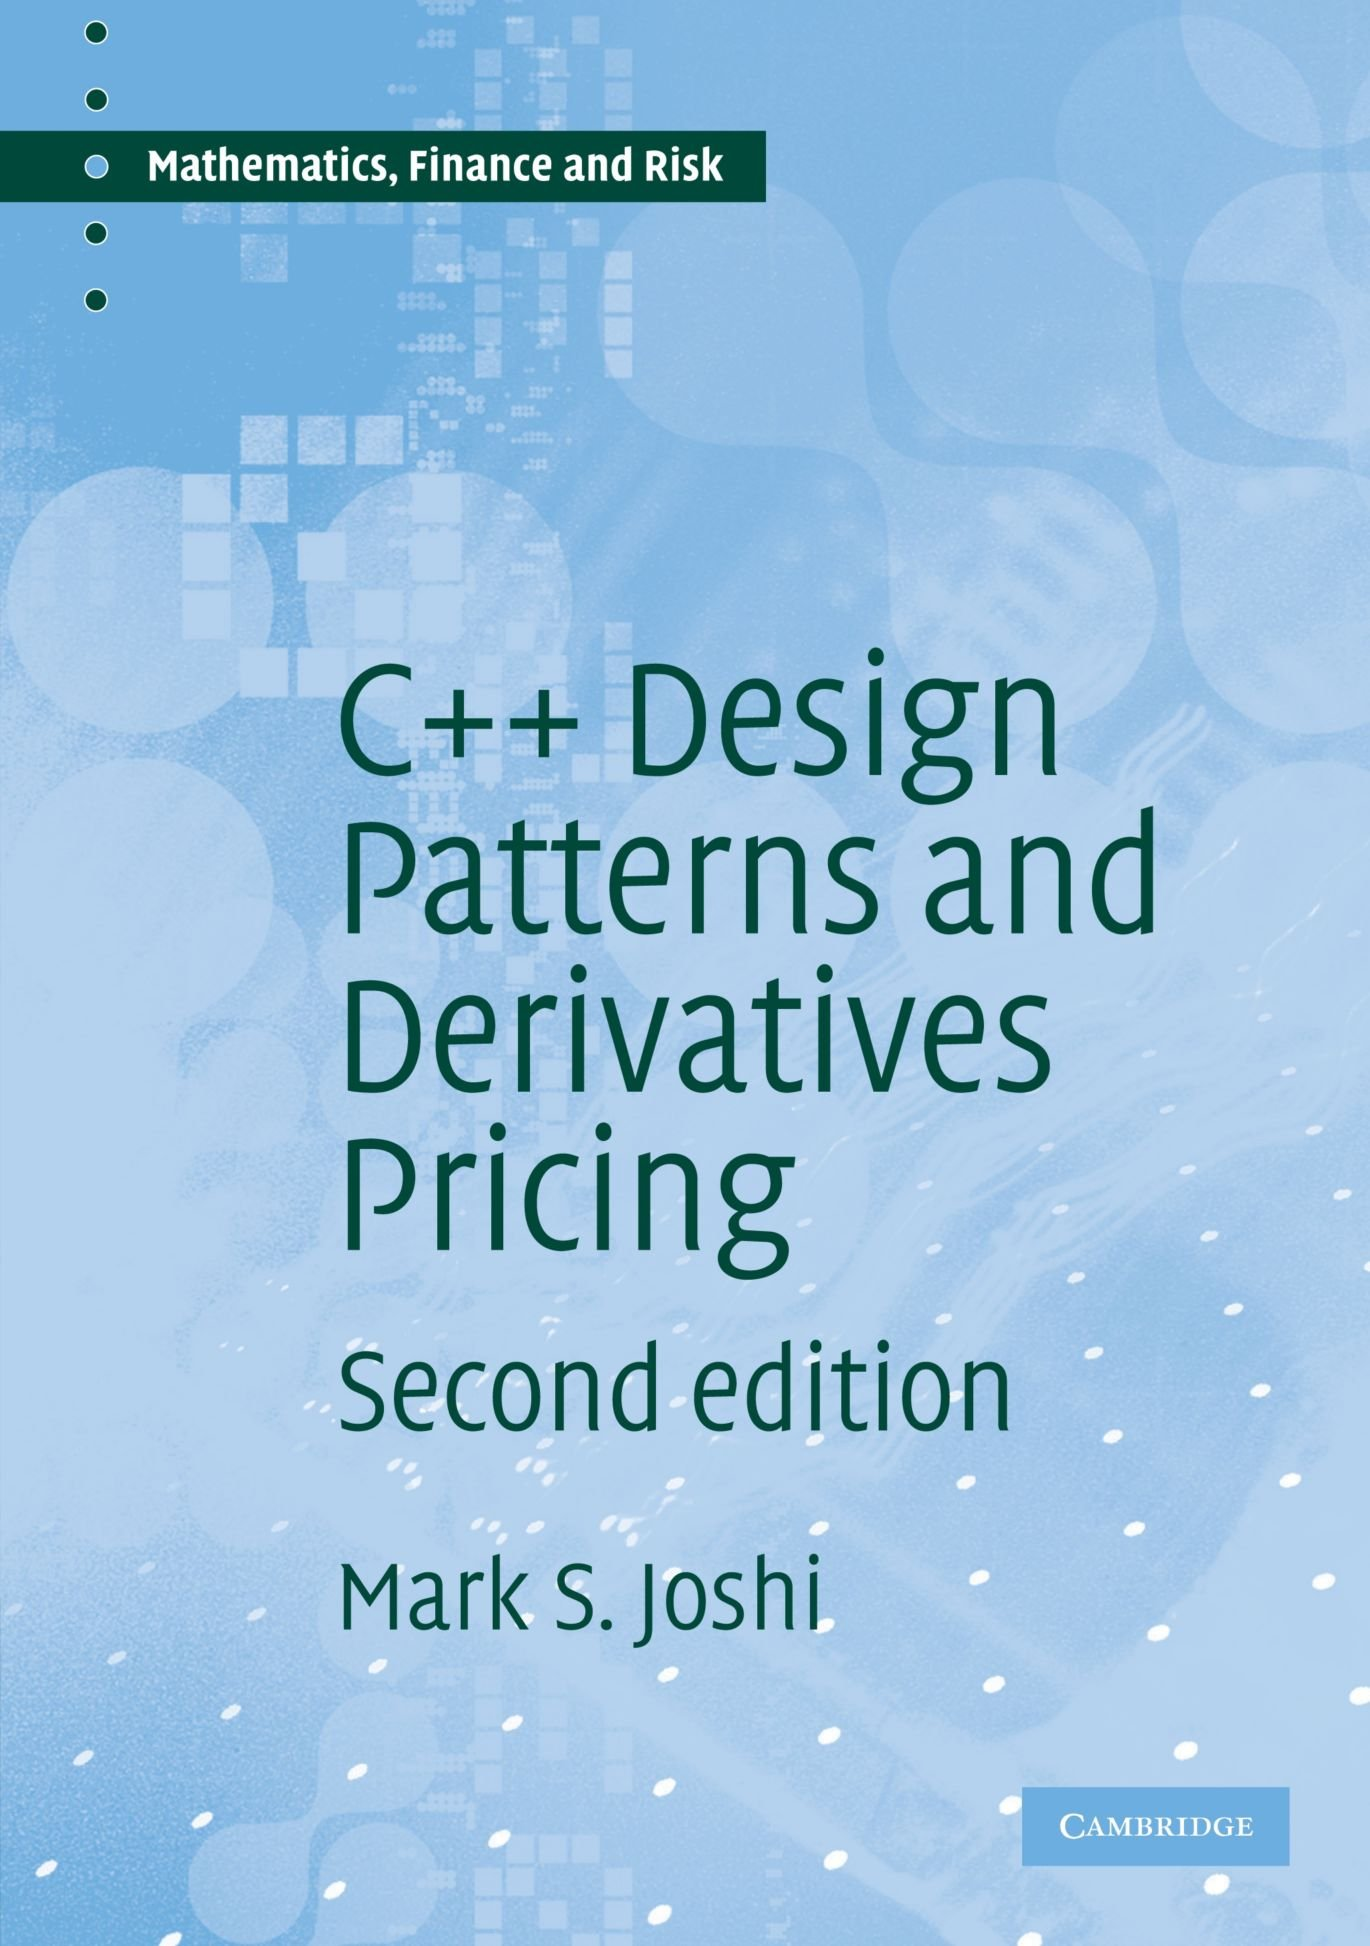 C++ Design Patterns and Derivatives Pricing (Mathematics, Finance and Risk) by Brand: Cambridge University Press